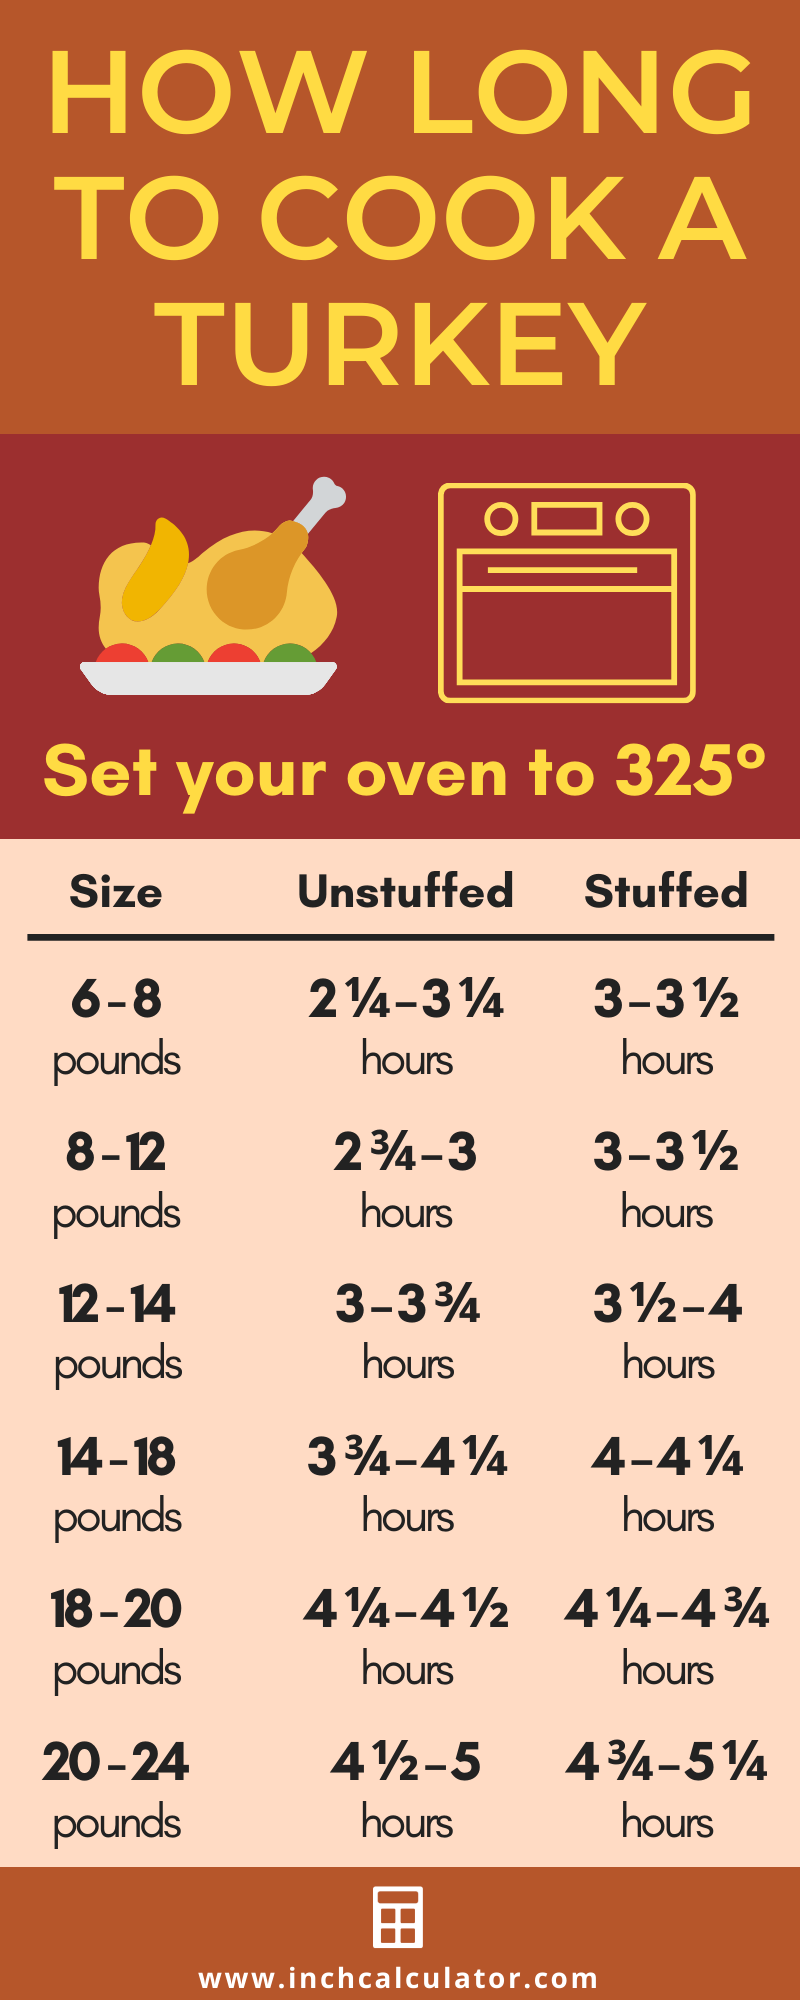 Turkey Cooking Time Calculator How Long To Cook A Turkey Turkey Cooking Times Fried Turkey Cook Turkey In Oven